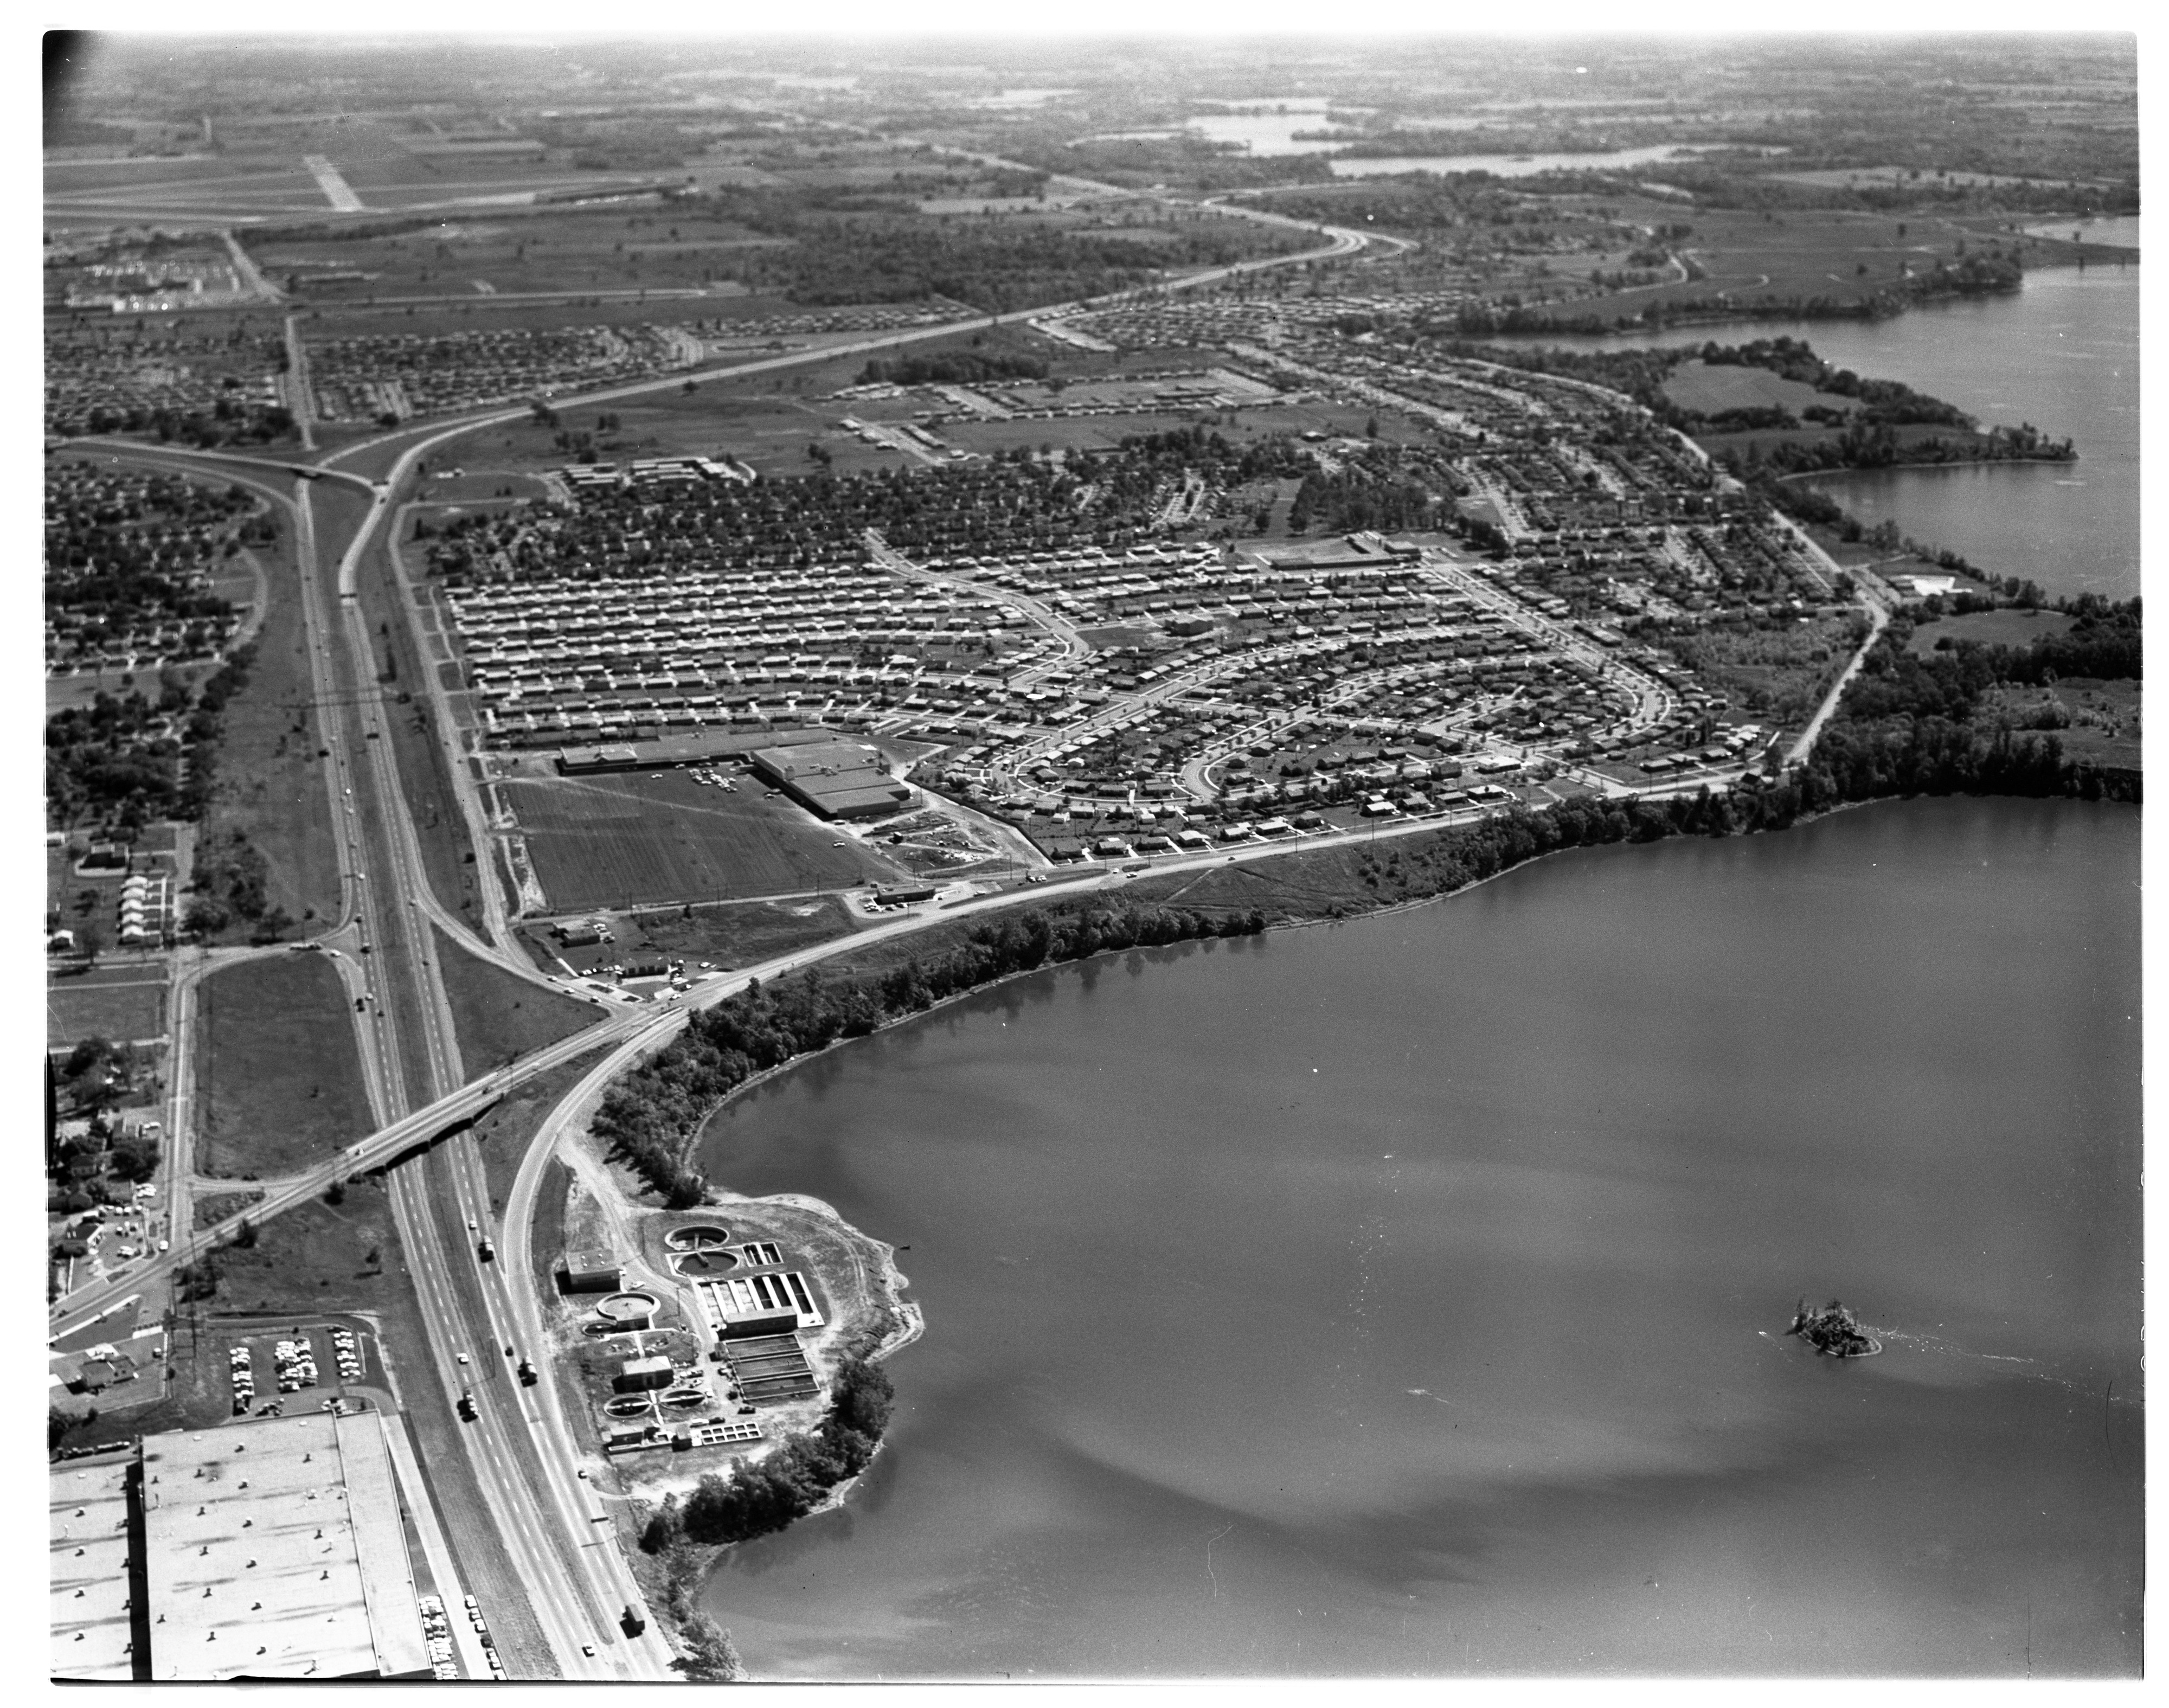 Aerial Photograph of Construction in Ypsilanti, September 1963 image